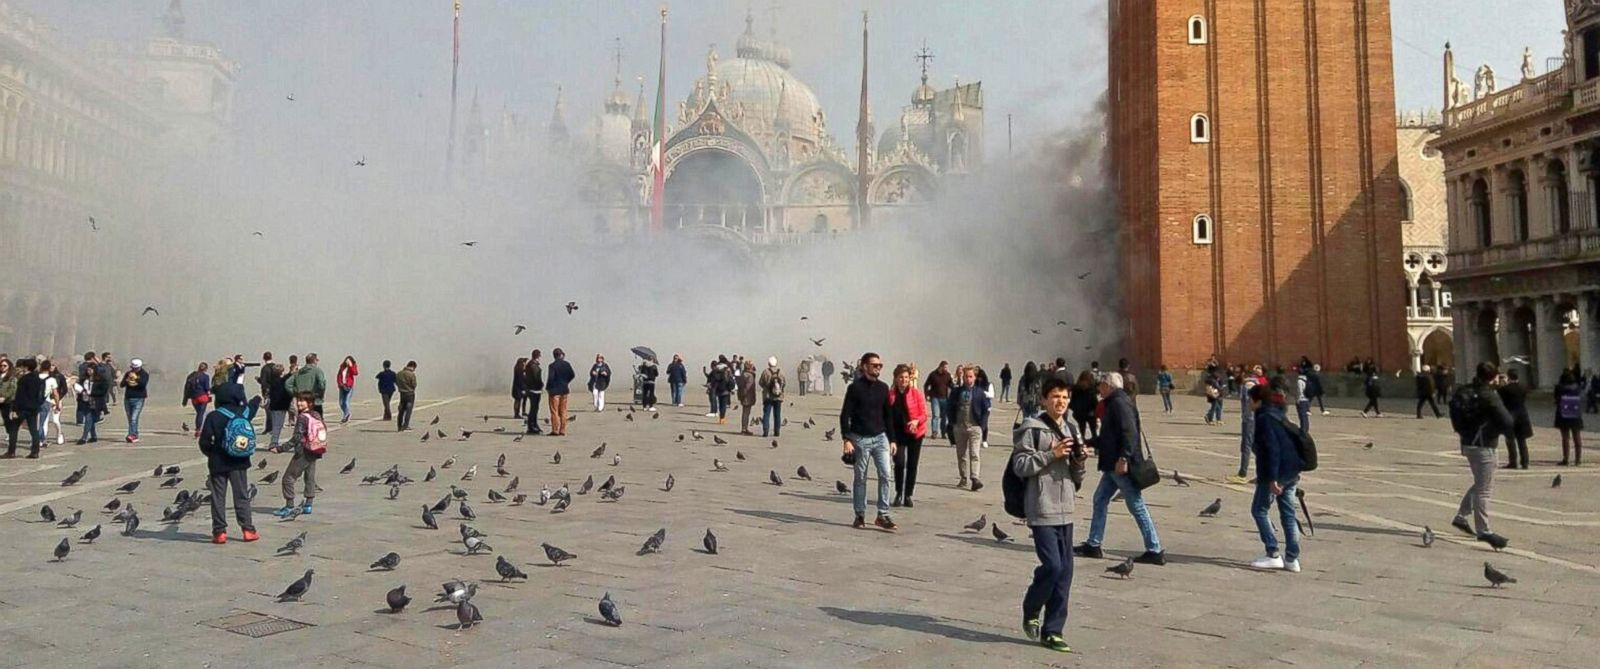 PHOTO: People walk in St Marks square as a smoke bomb is launched during an attempted robbery, in Venice, Italy, March 17, 2017.